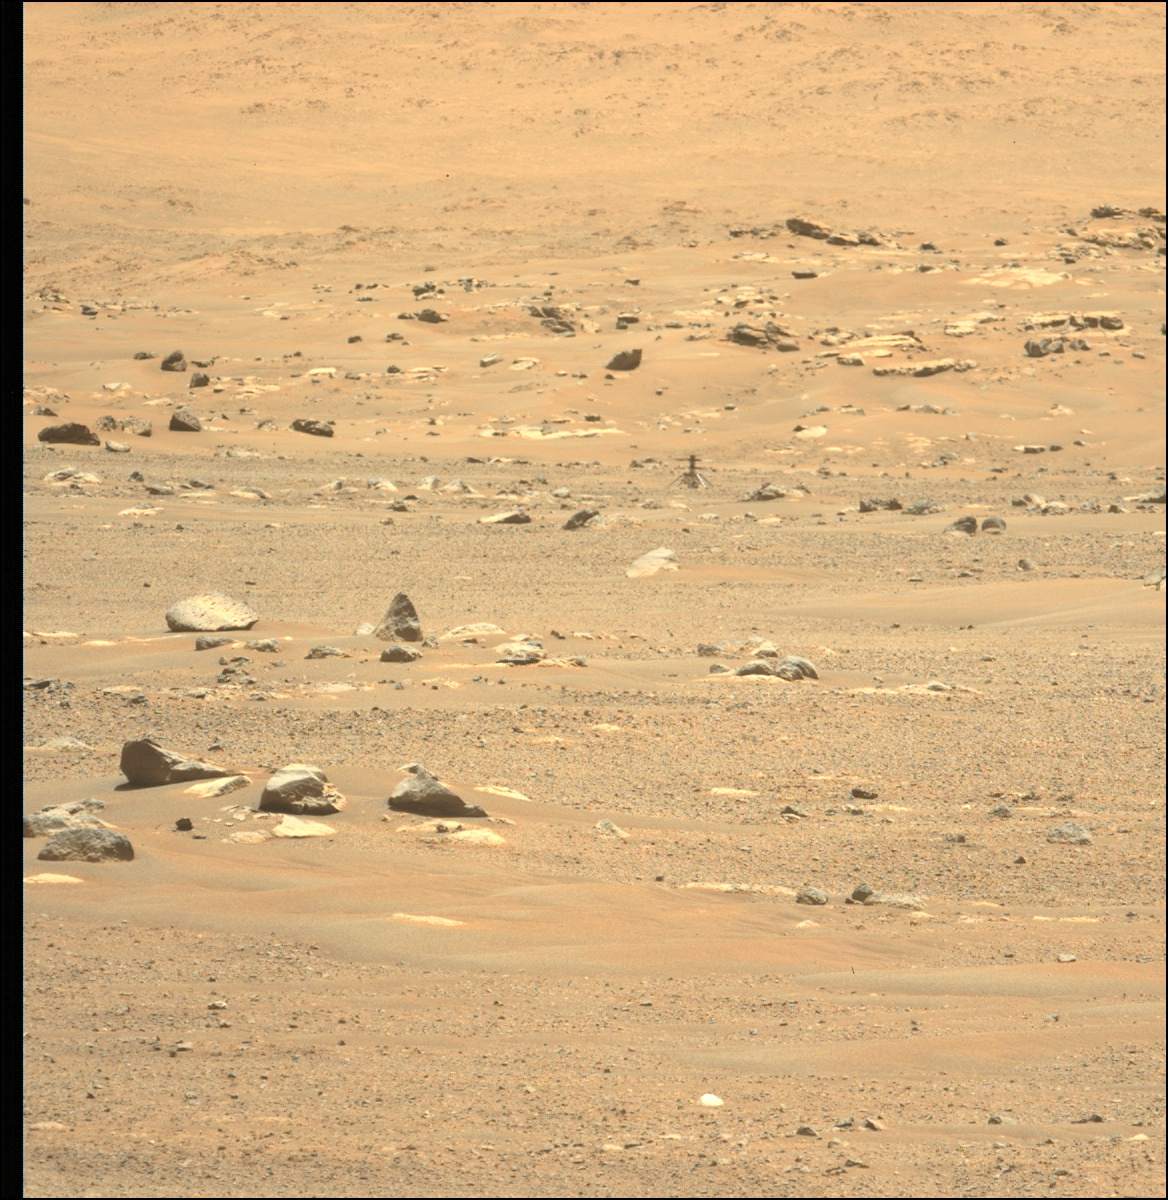 A view of the Ingenuity Helicopter as seen from the Perseverance rover the day after its sixth flight using its Mastcam-Z instrument. Credit: NASA/JPL-Caltech